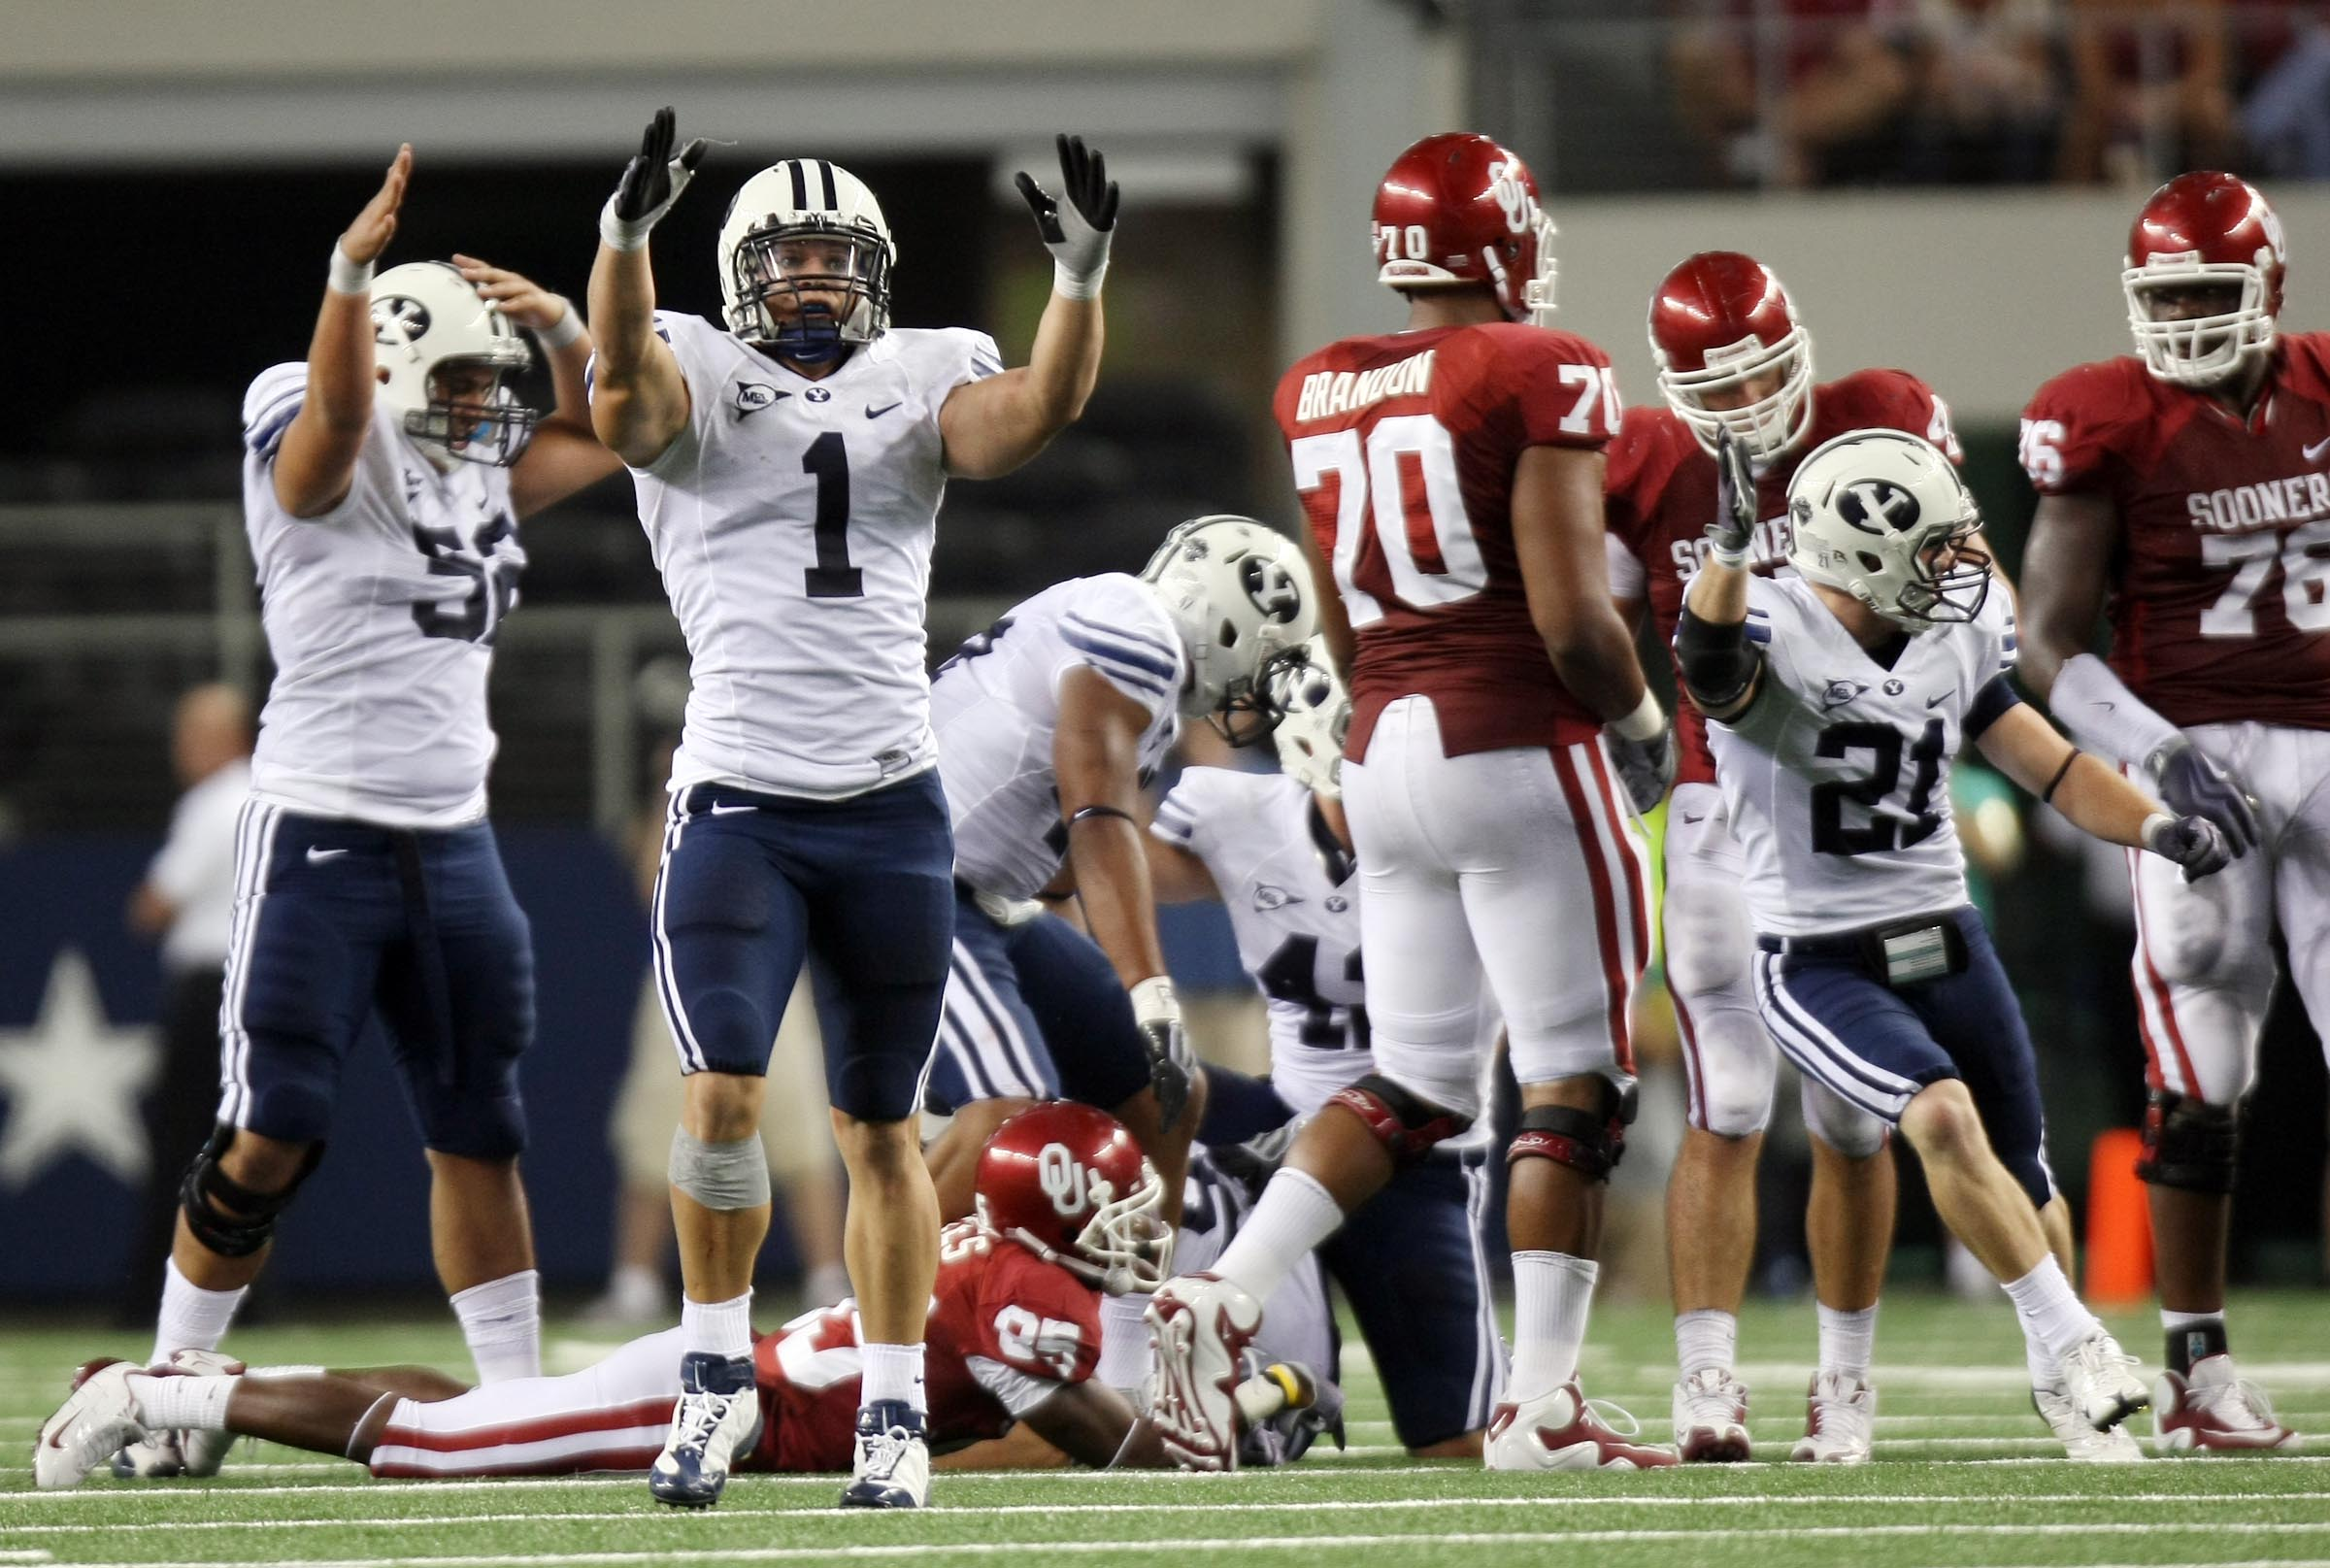 BYU's Jordan Pendleton (1) and other players celebrate a fumble recovery as BYU and Oklahoma play in Texas in 2009.